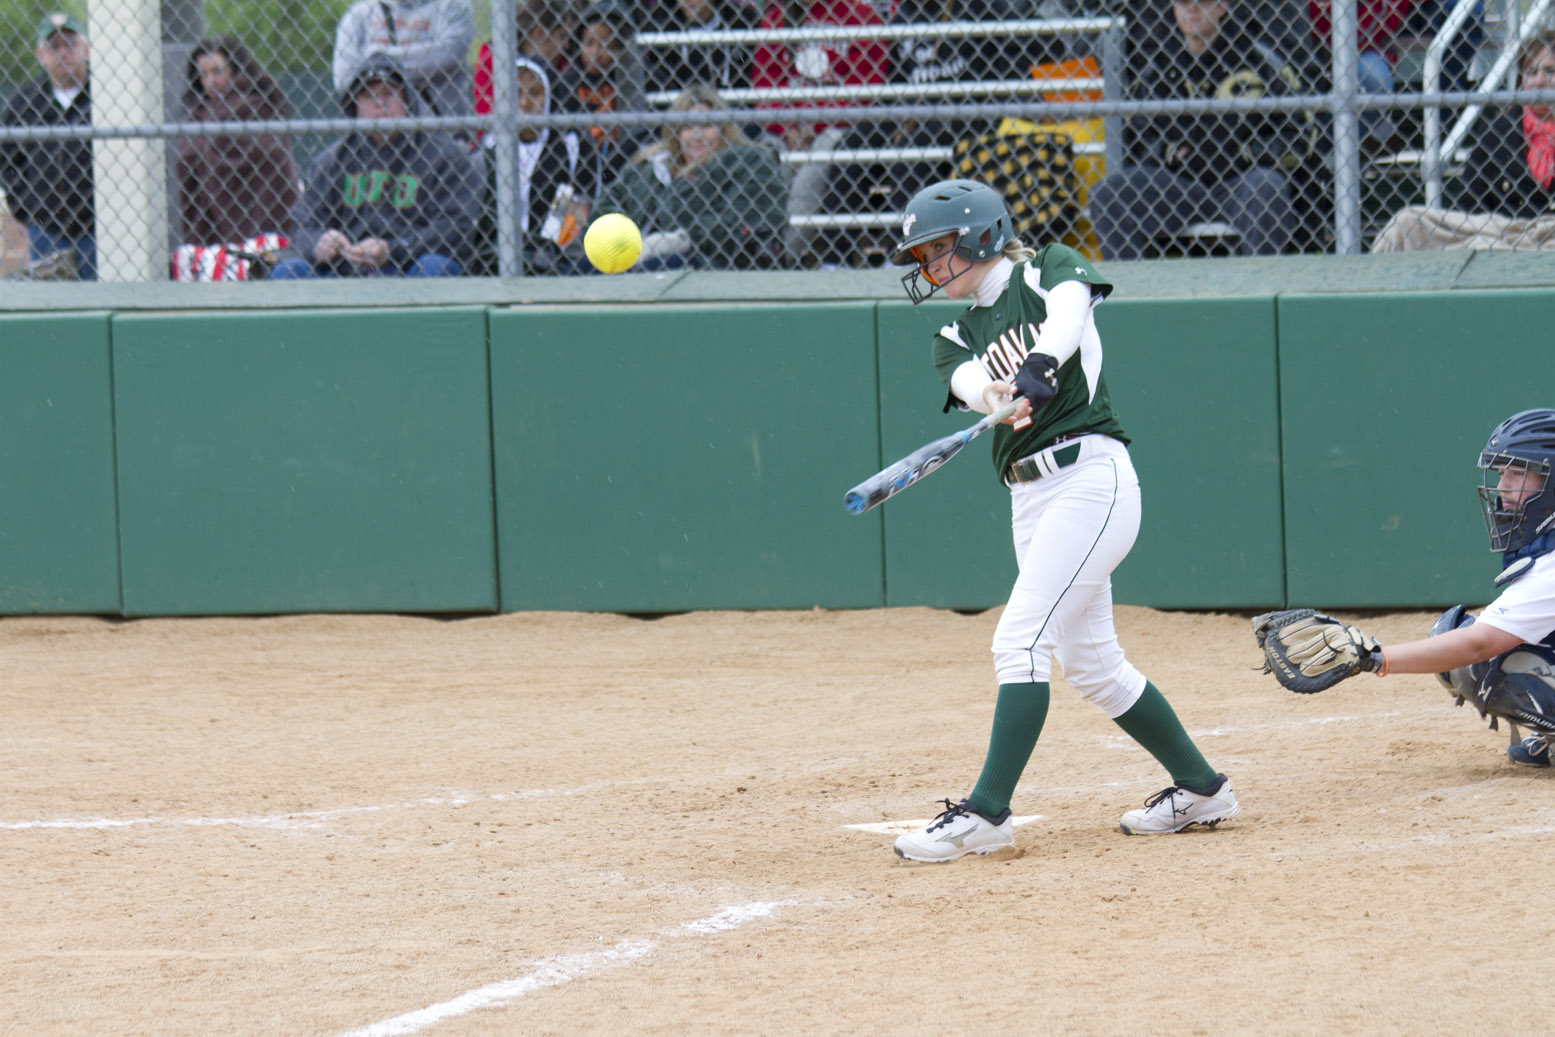 Inexperienced softball team improving in spite of recent losses